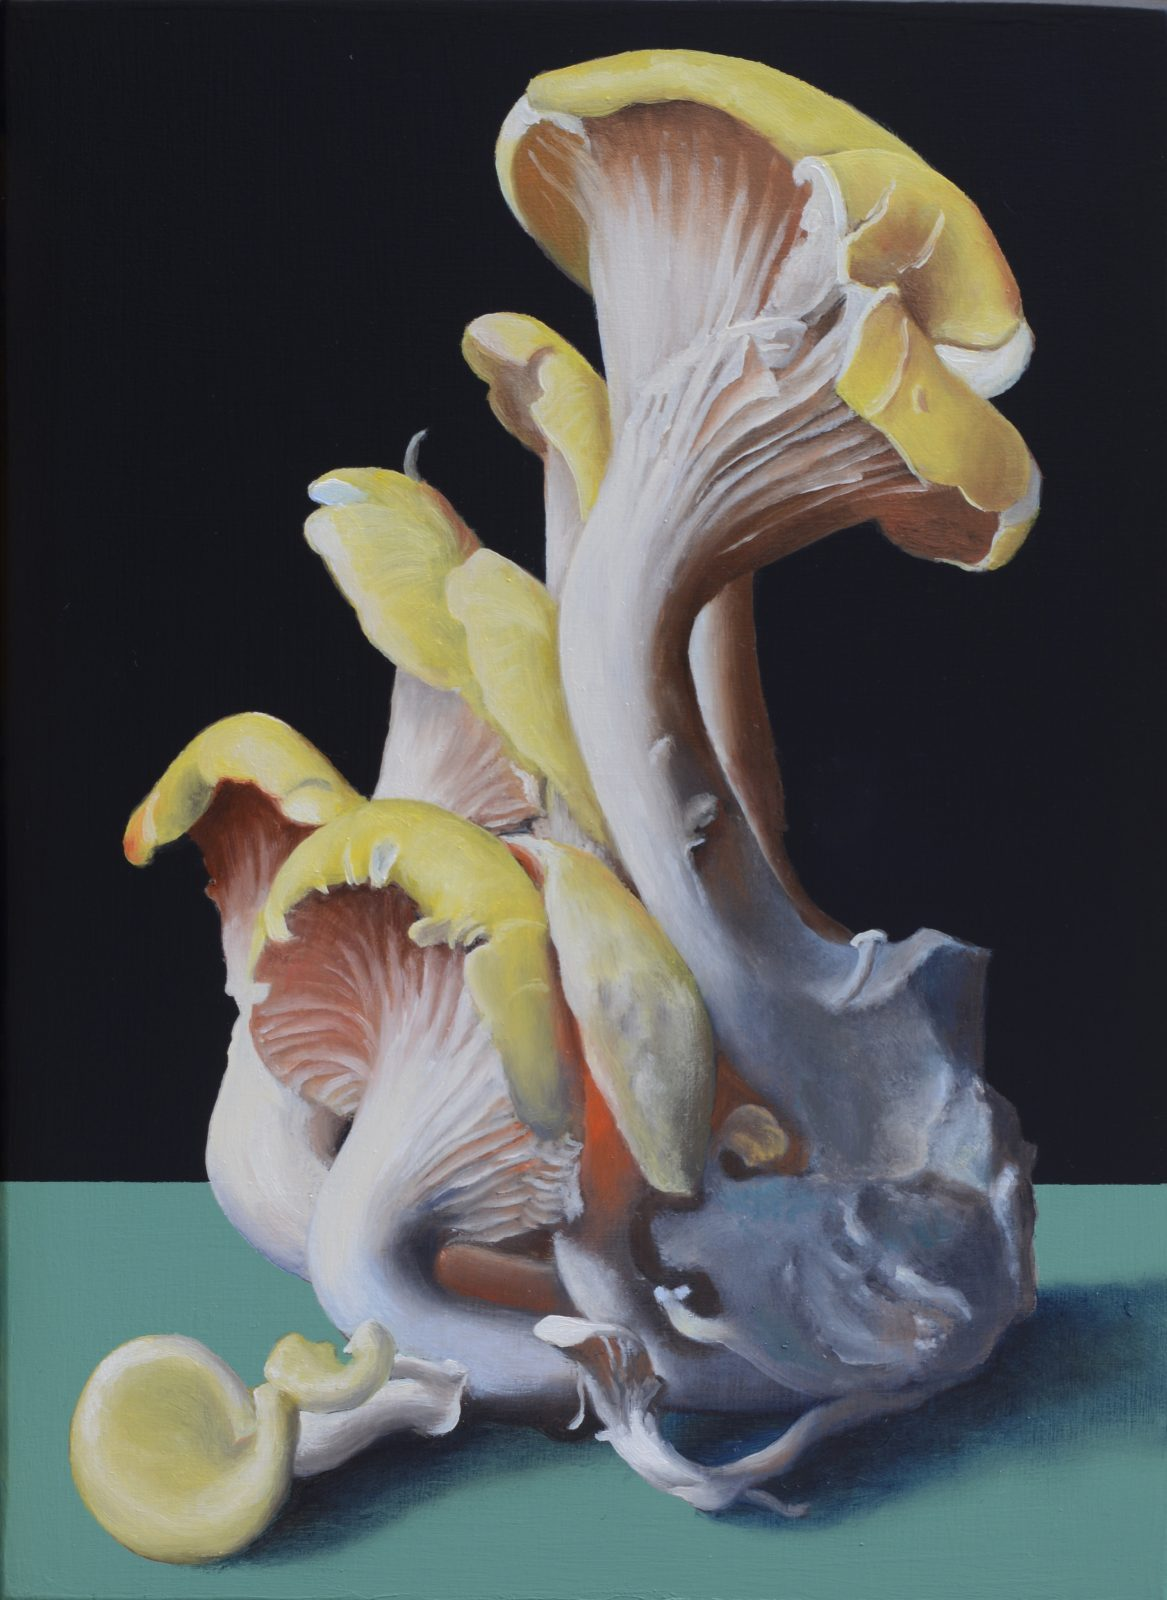 Máté Orr: Life of Mushrooms